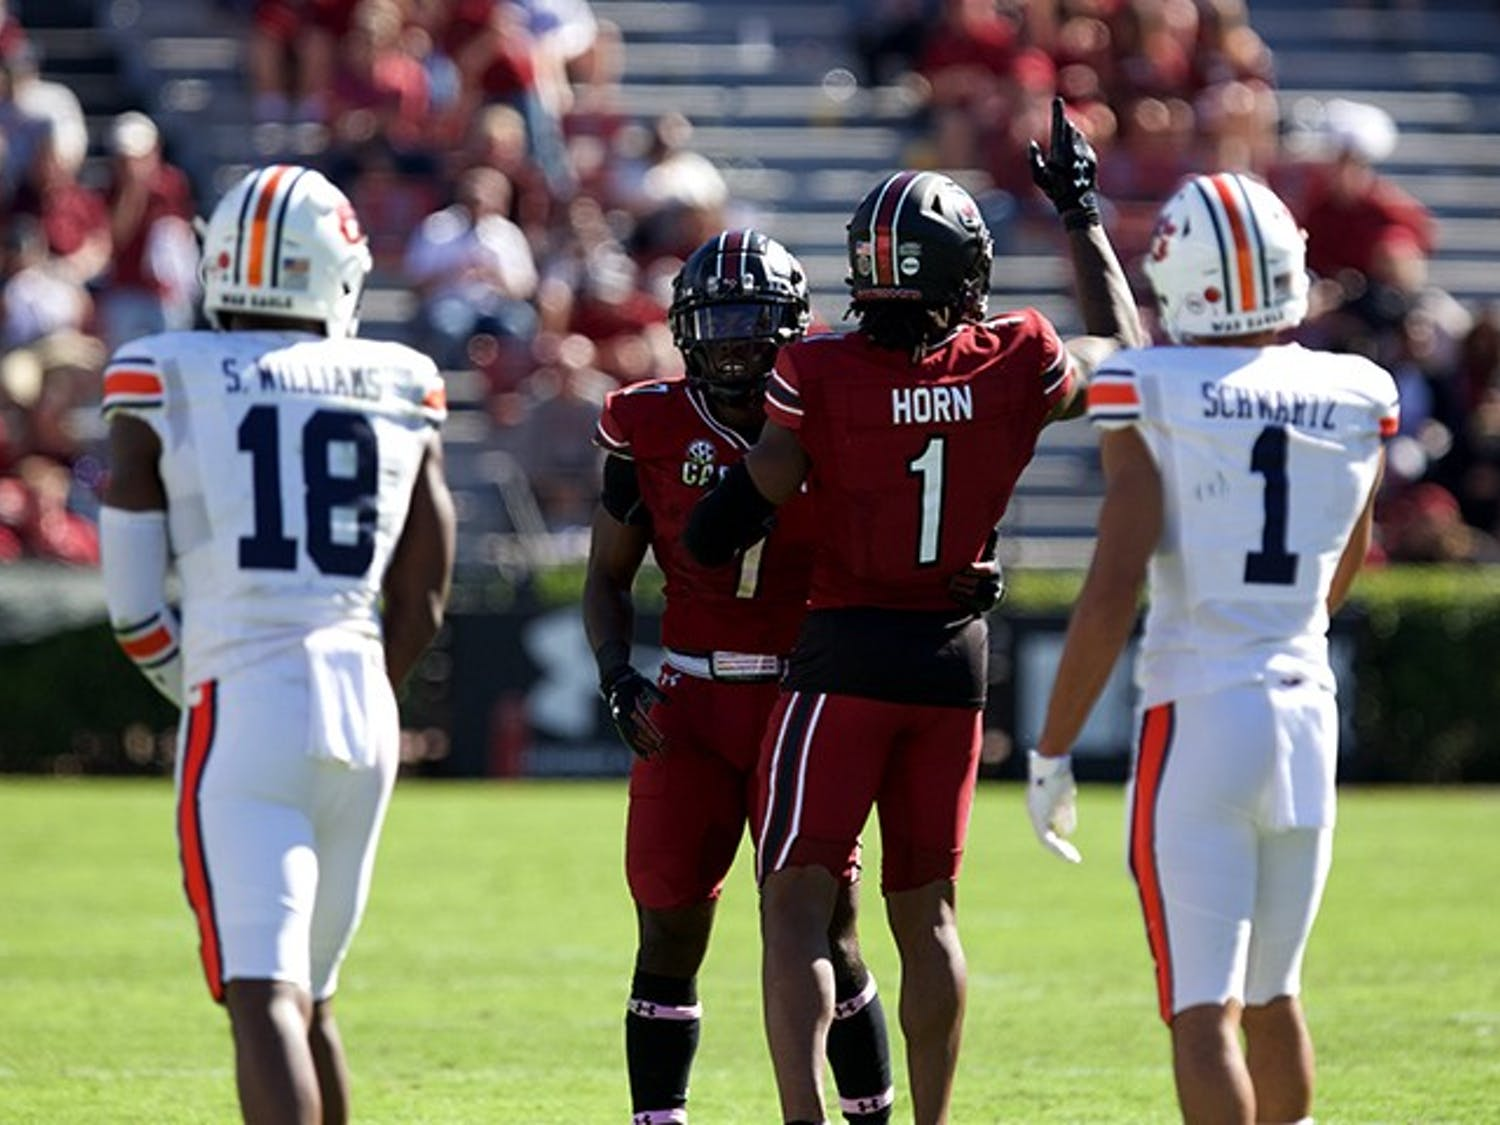 Cornerback Jaycee Horn celebrates his tackle during the third quarter of the game on Saturday, Oct. 17. South Carolina upset Auburn 30-22 at home.